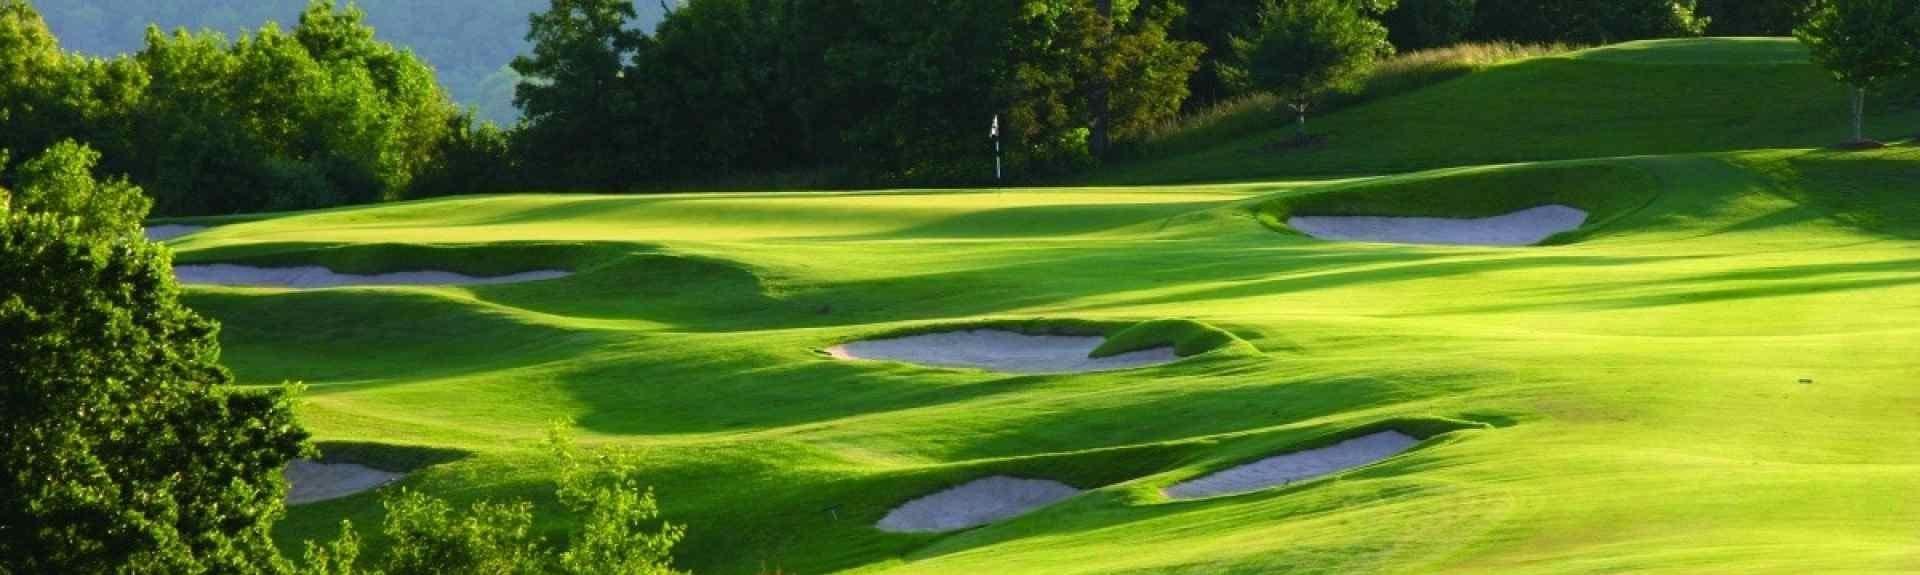 Thousand Island Golf Resort, Branson, Missouri, United States of America